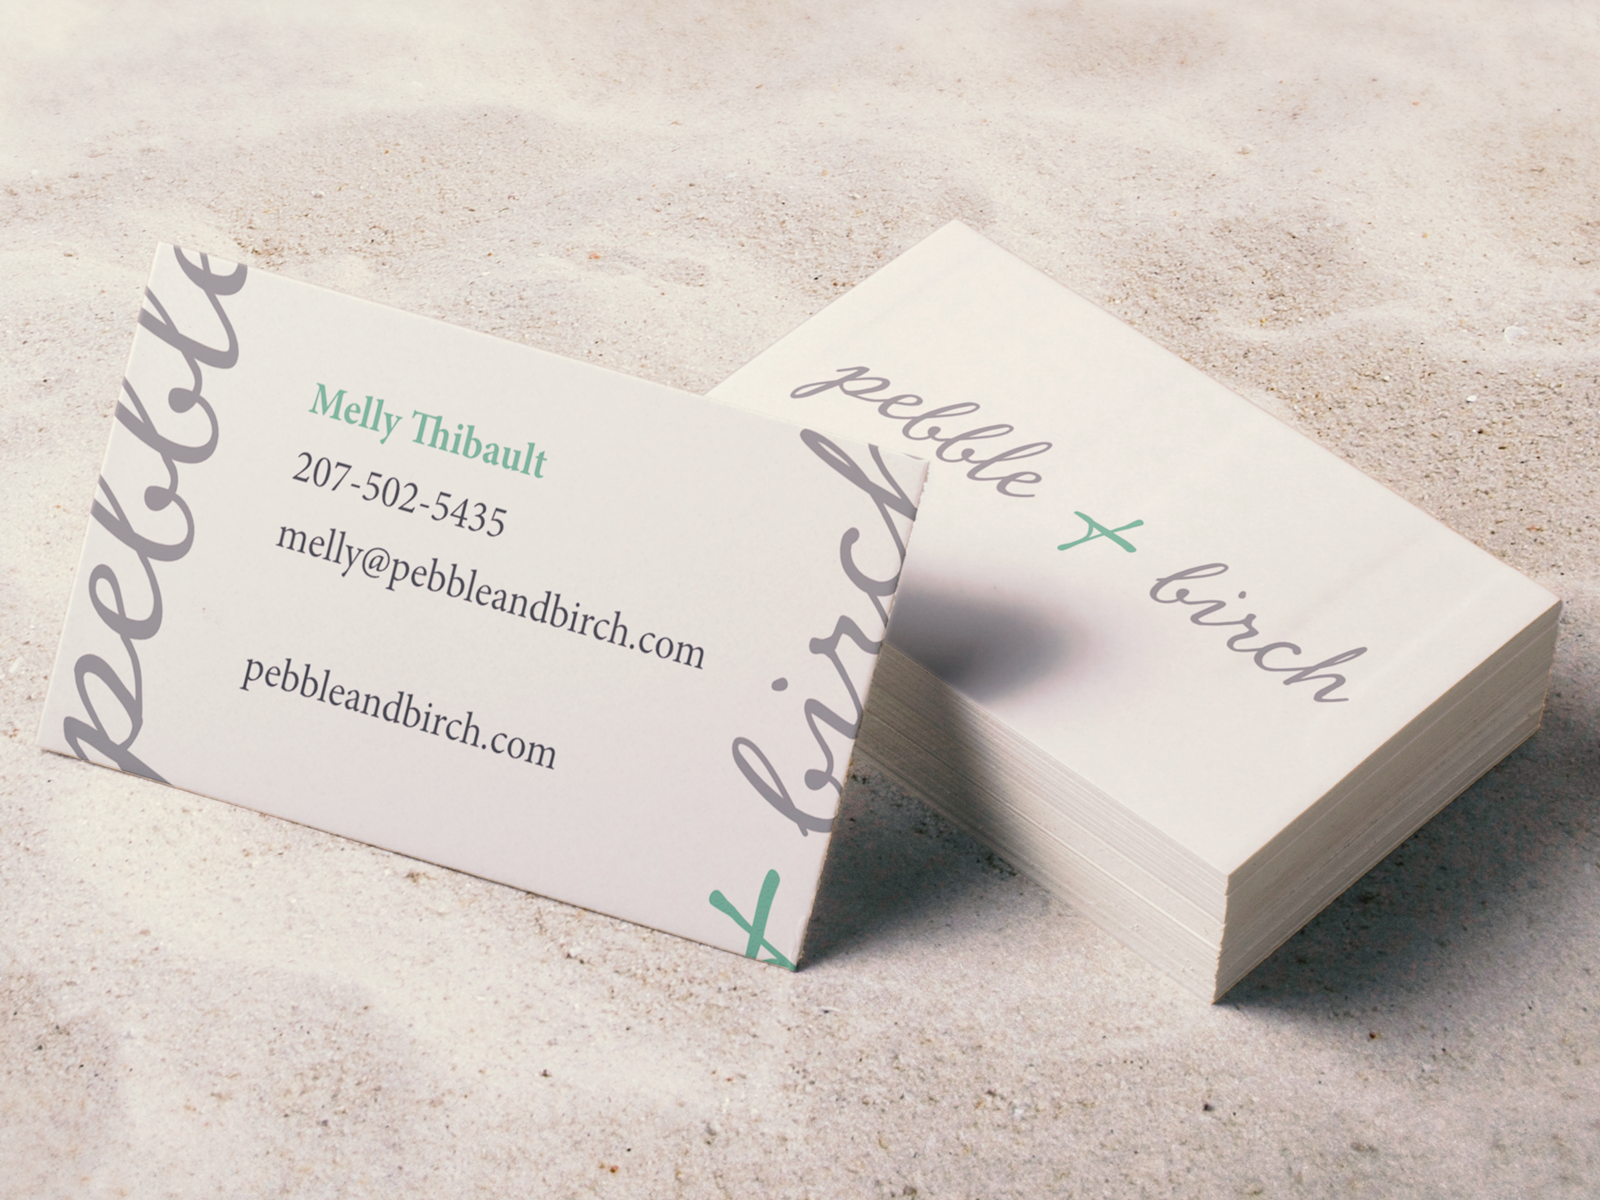 Pebble and birch business card for dribbble hires